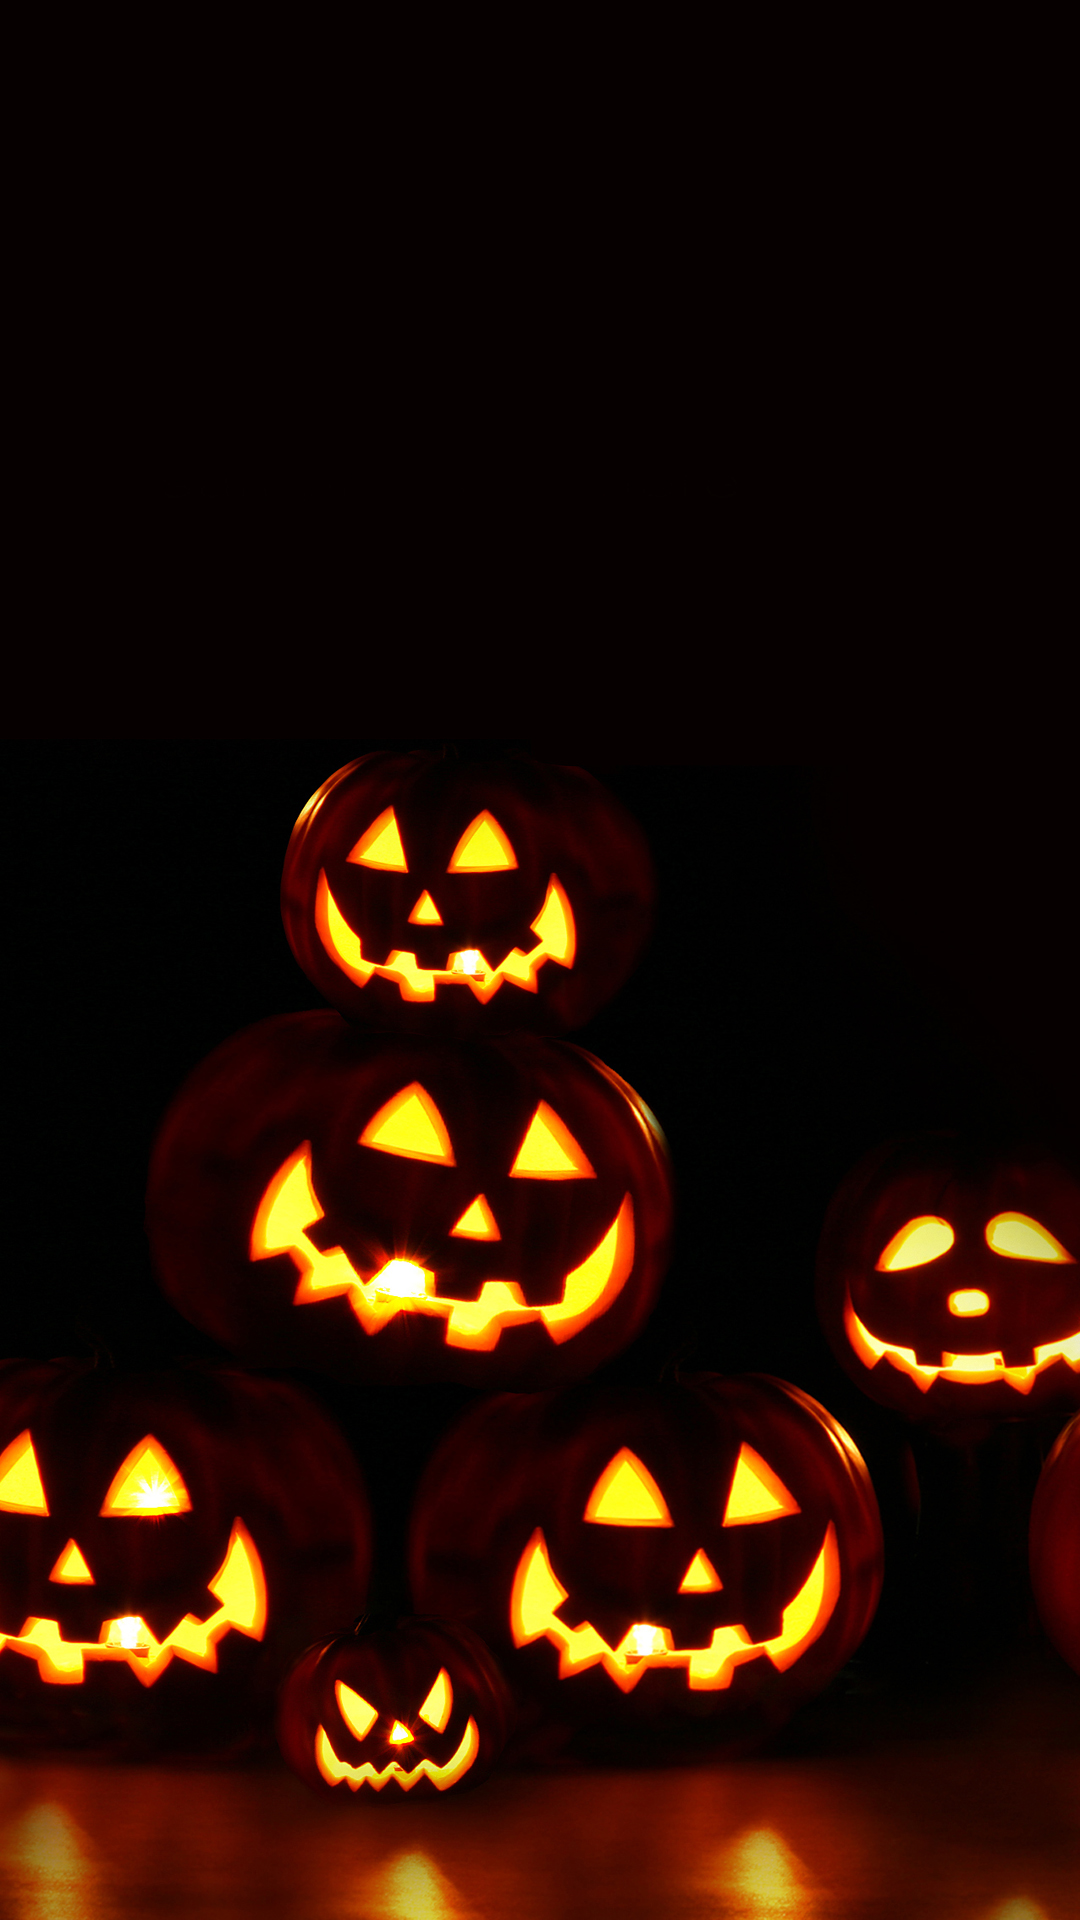 Good Wallpaper Halloween Smartphone - Pumpkins-Halloween1  Photograph_7937.jpg